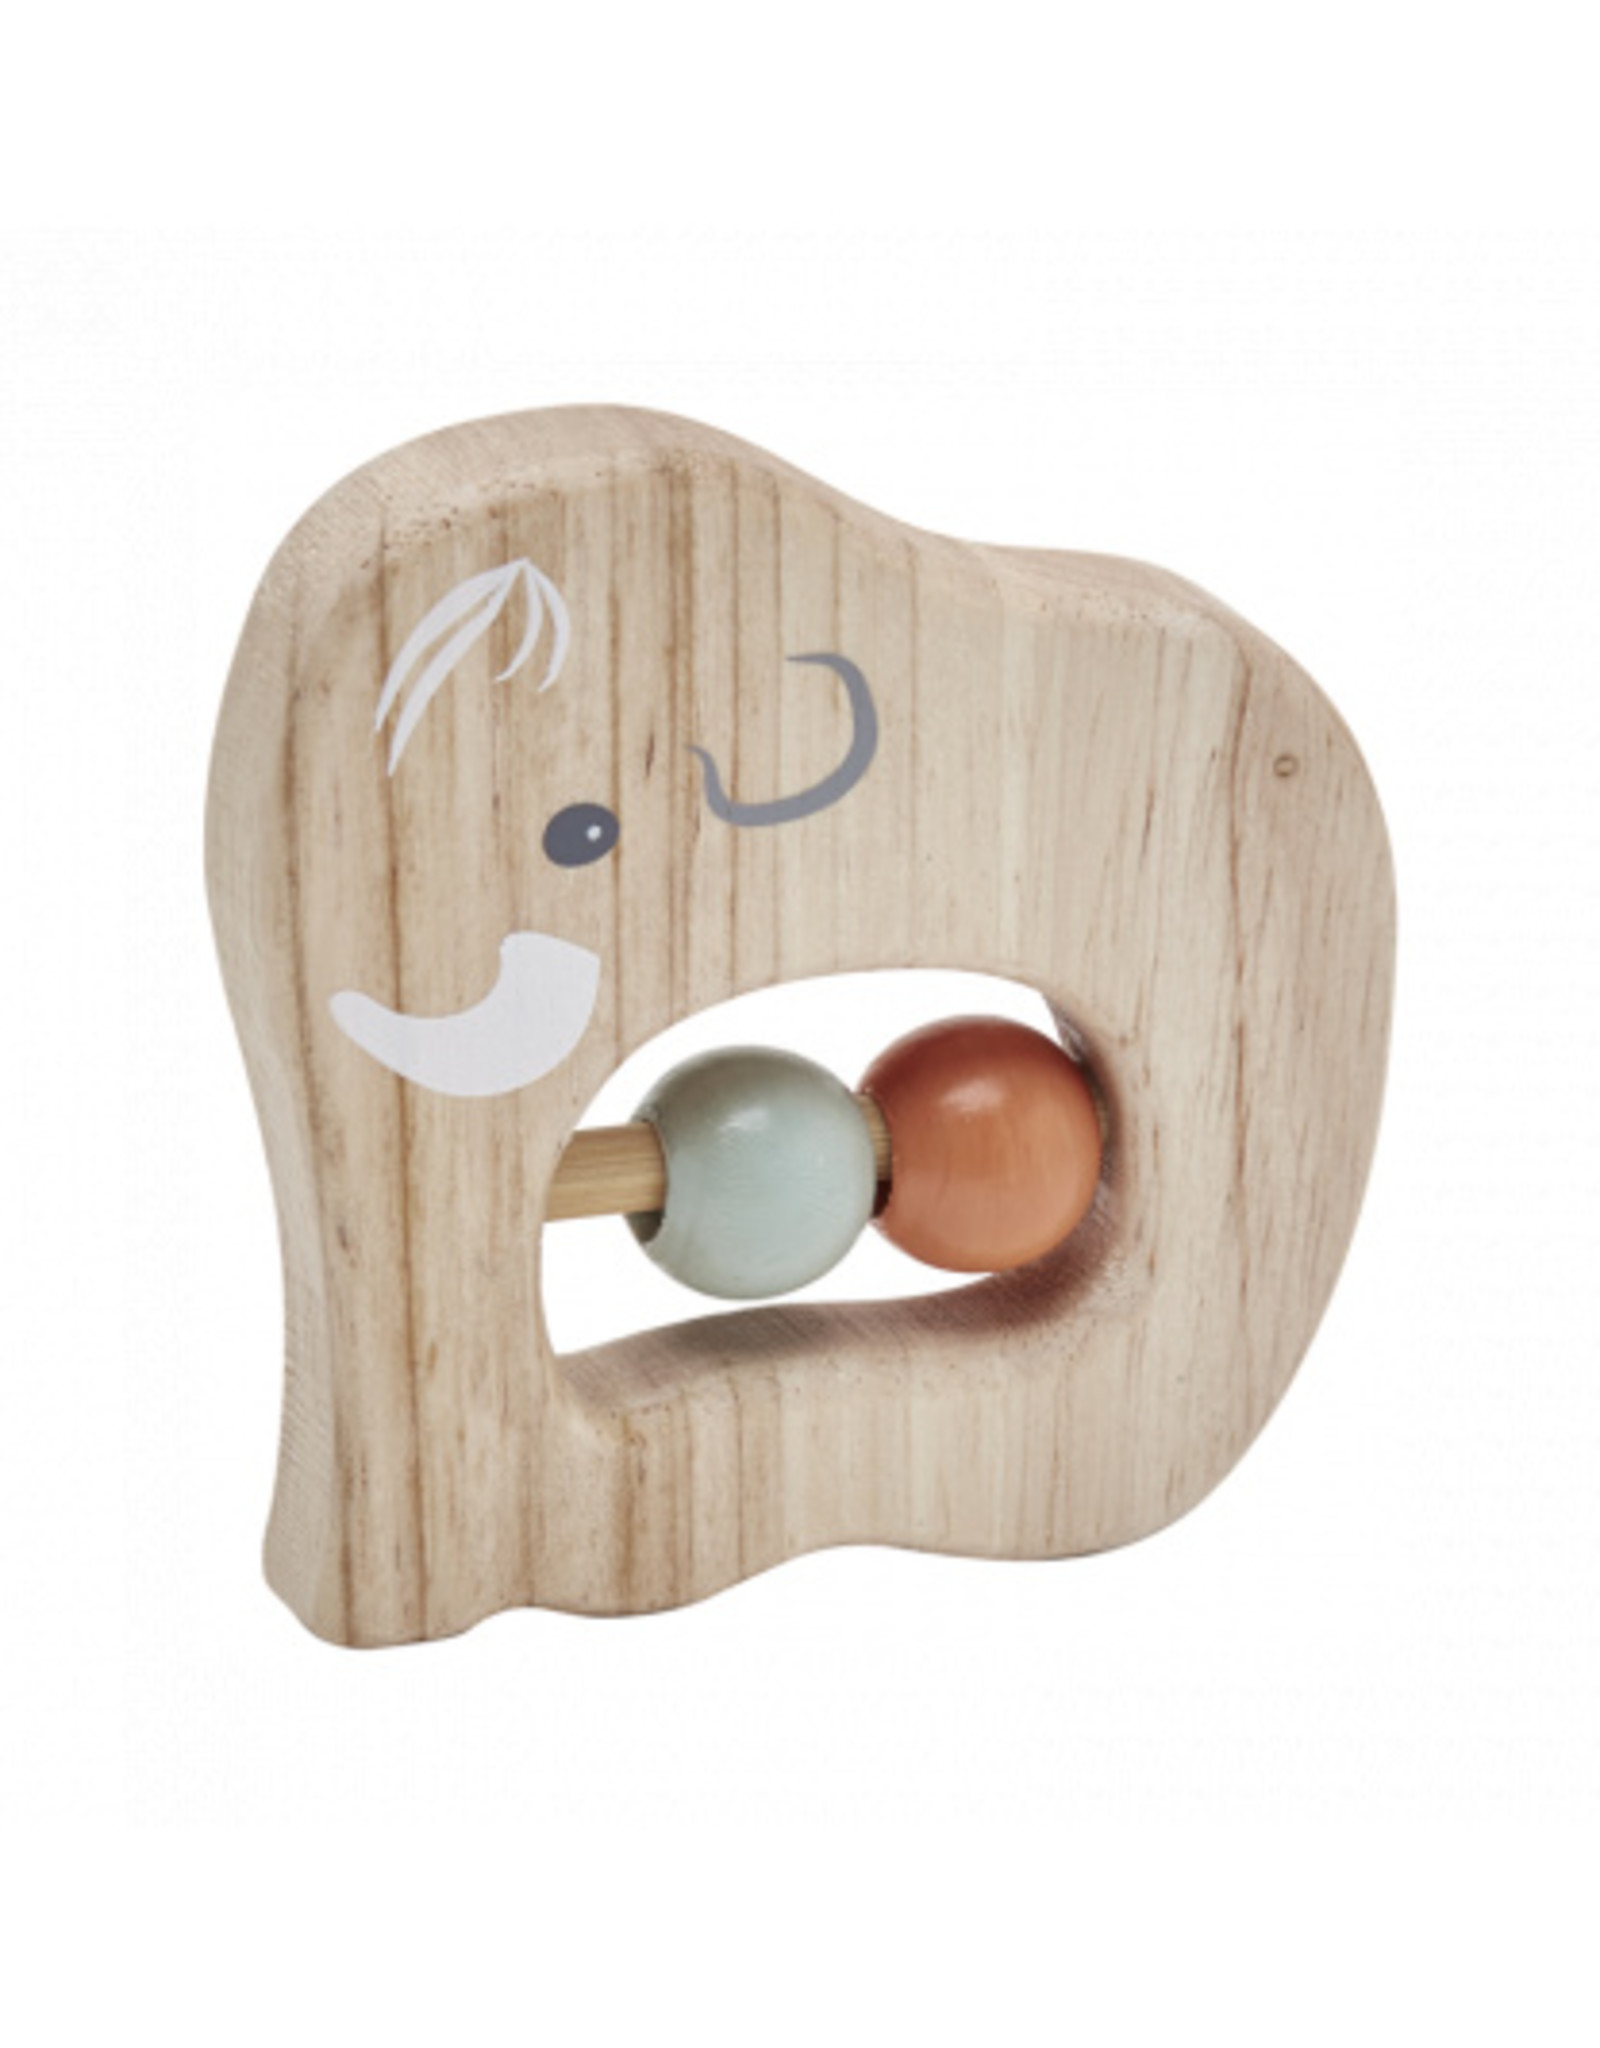 KIDS CONCEPT Mammoth Rattle